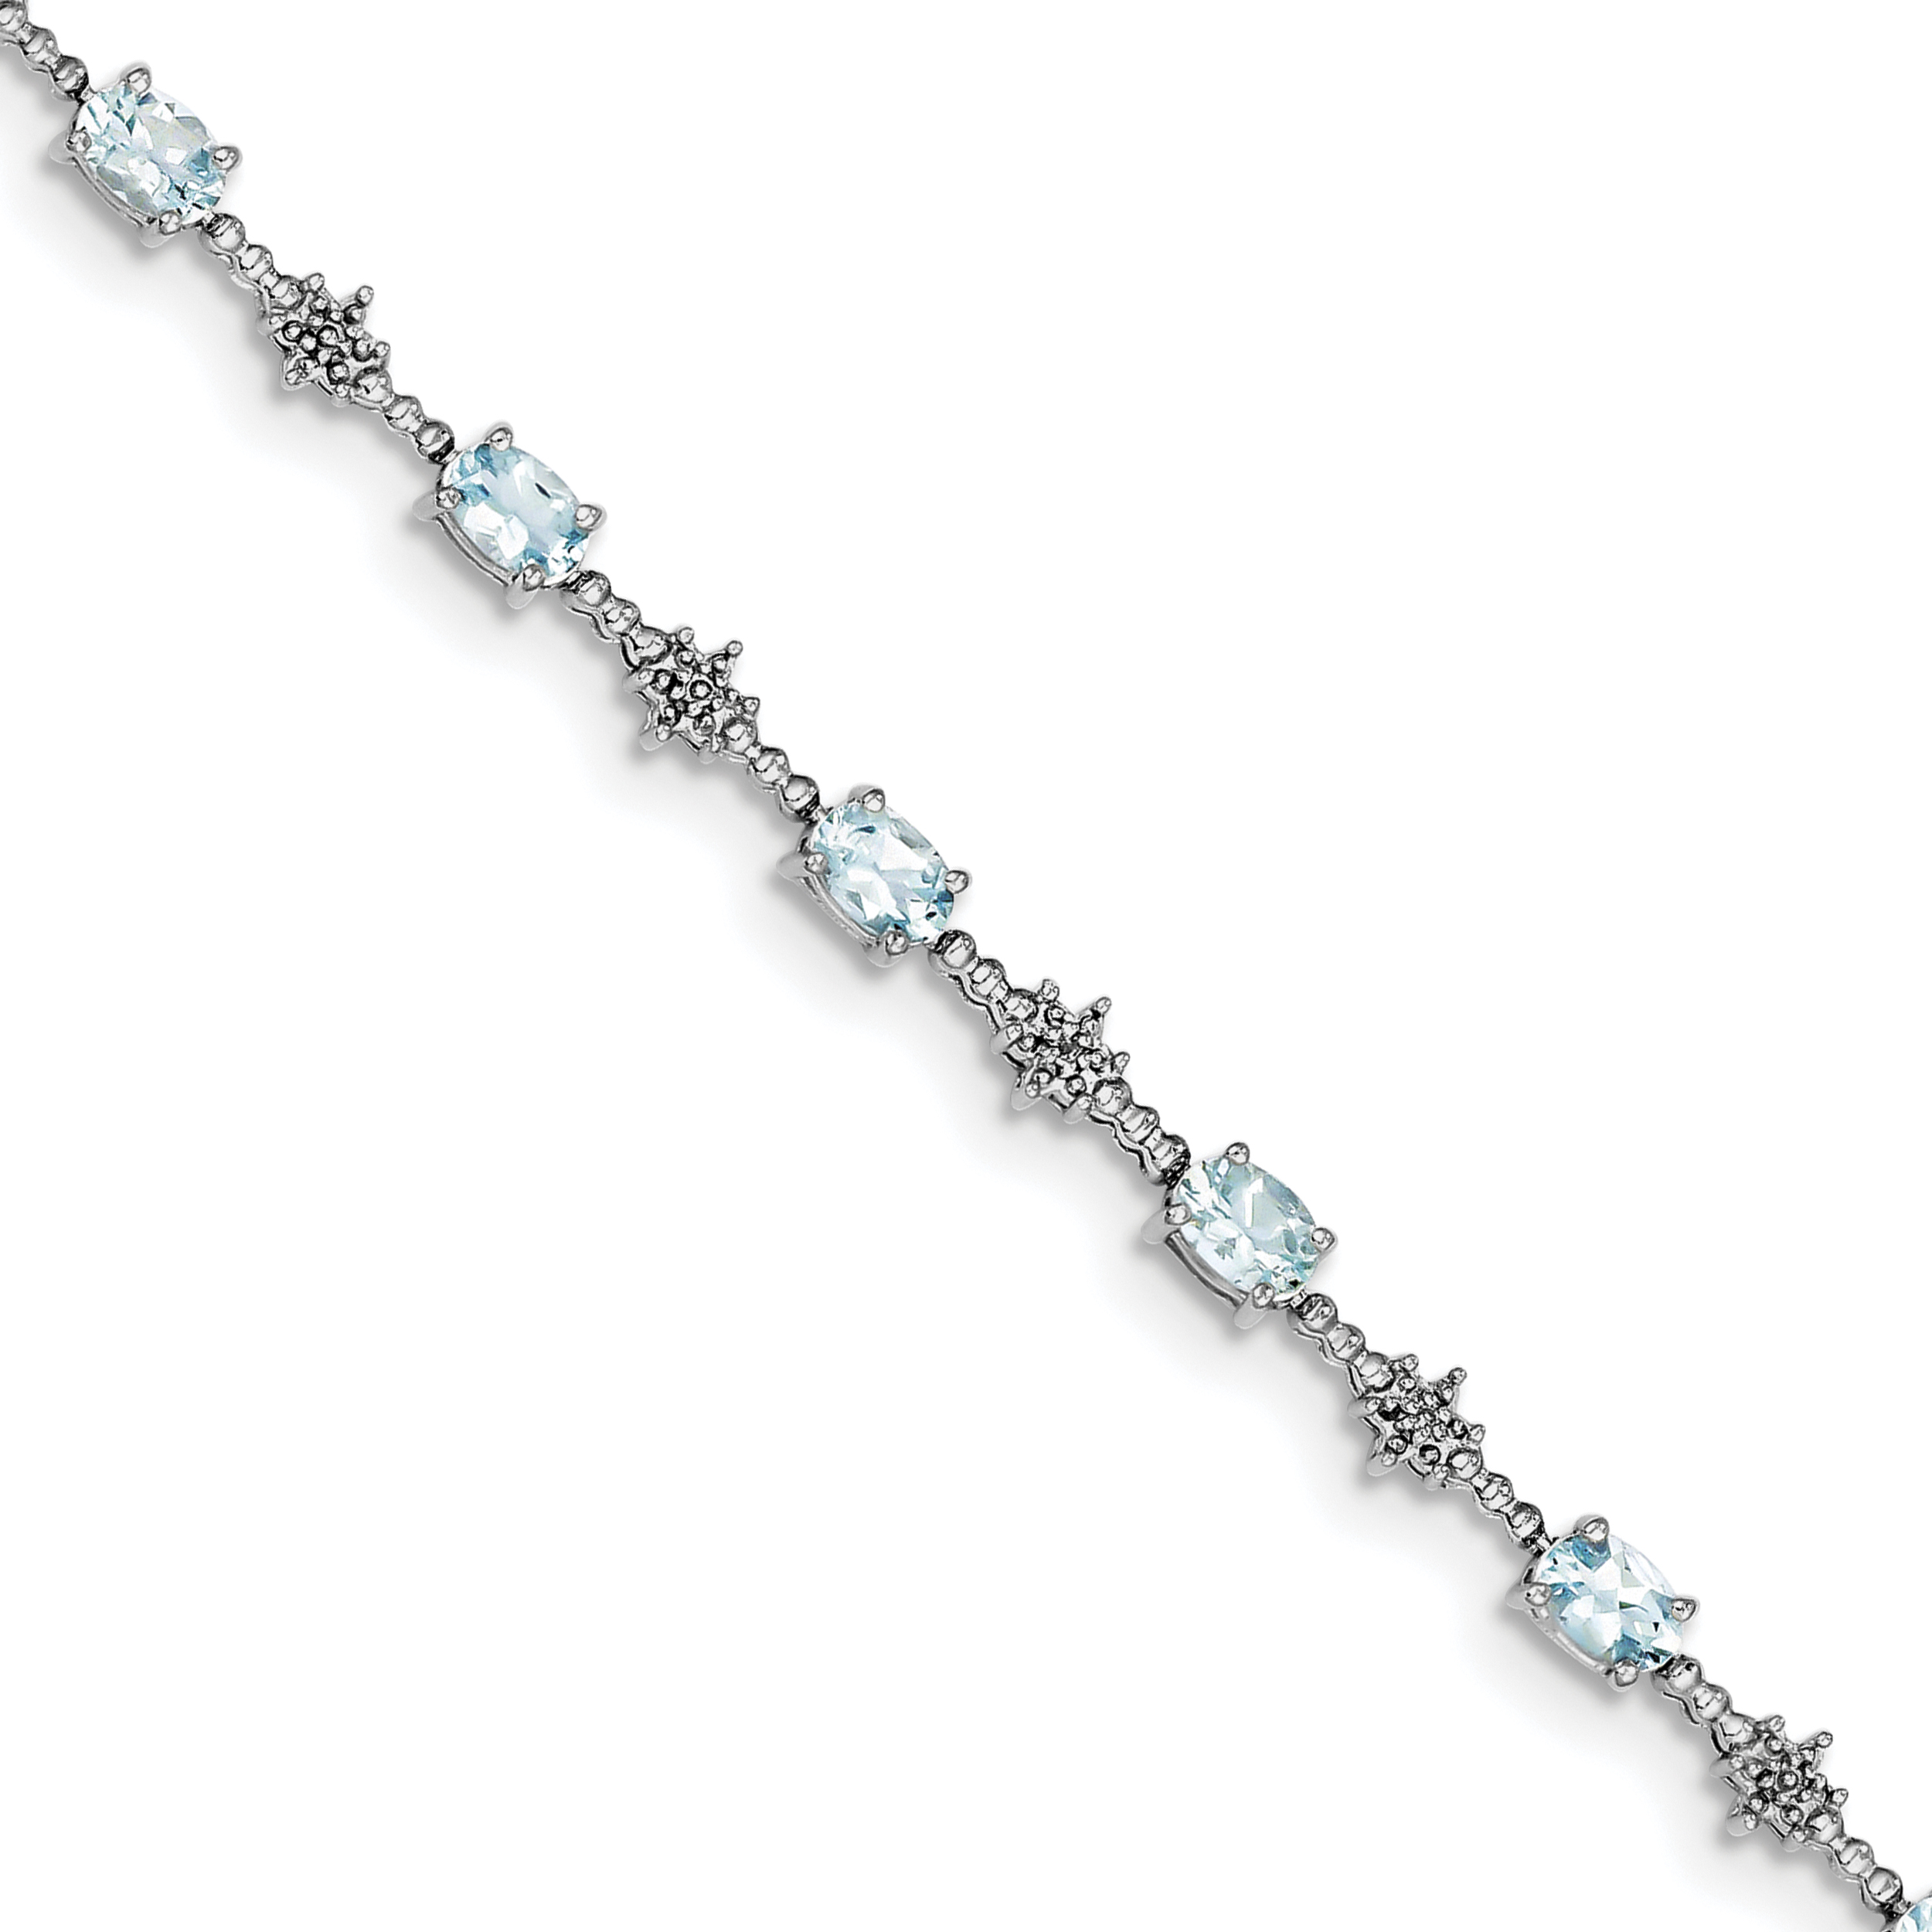 Sterling Silver Rhodium-plated Aquamarine and Diamond Bracelet QX859AQ by Core Silver